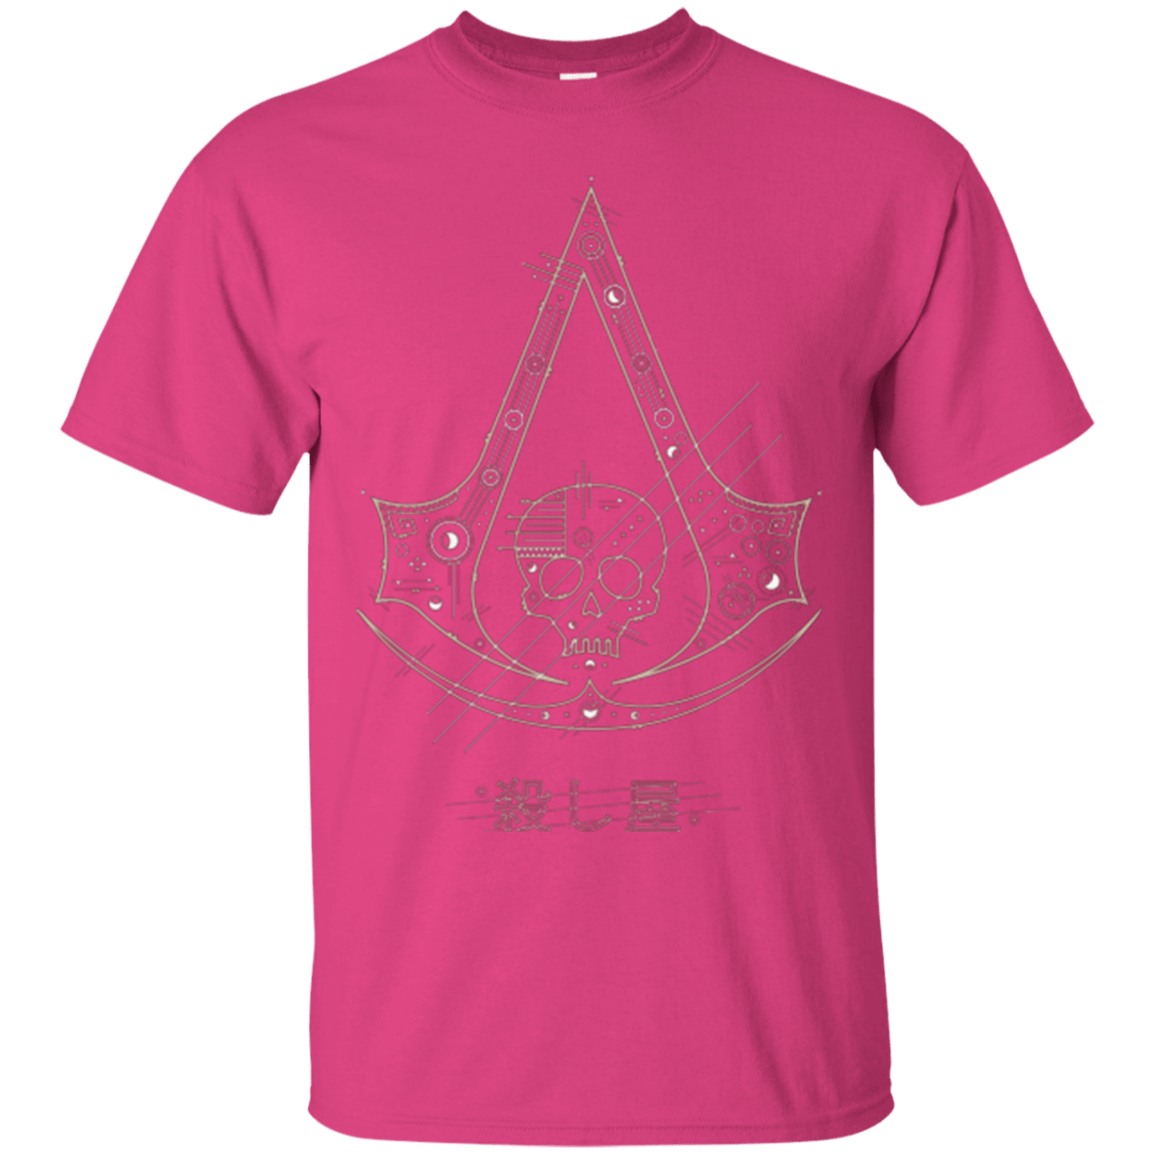 T-Shirts Heliconia / Small Tech Creed T-Shirt